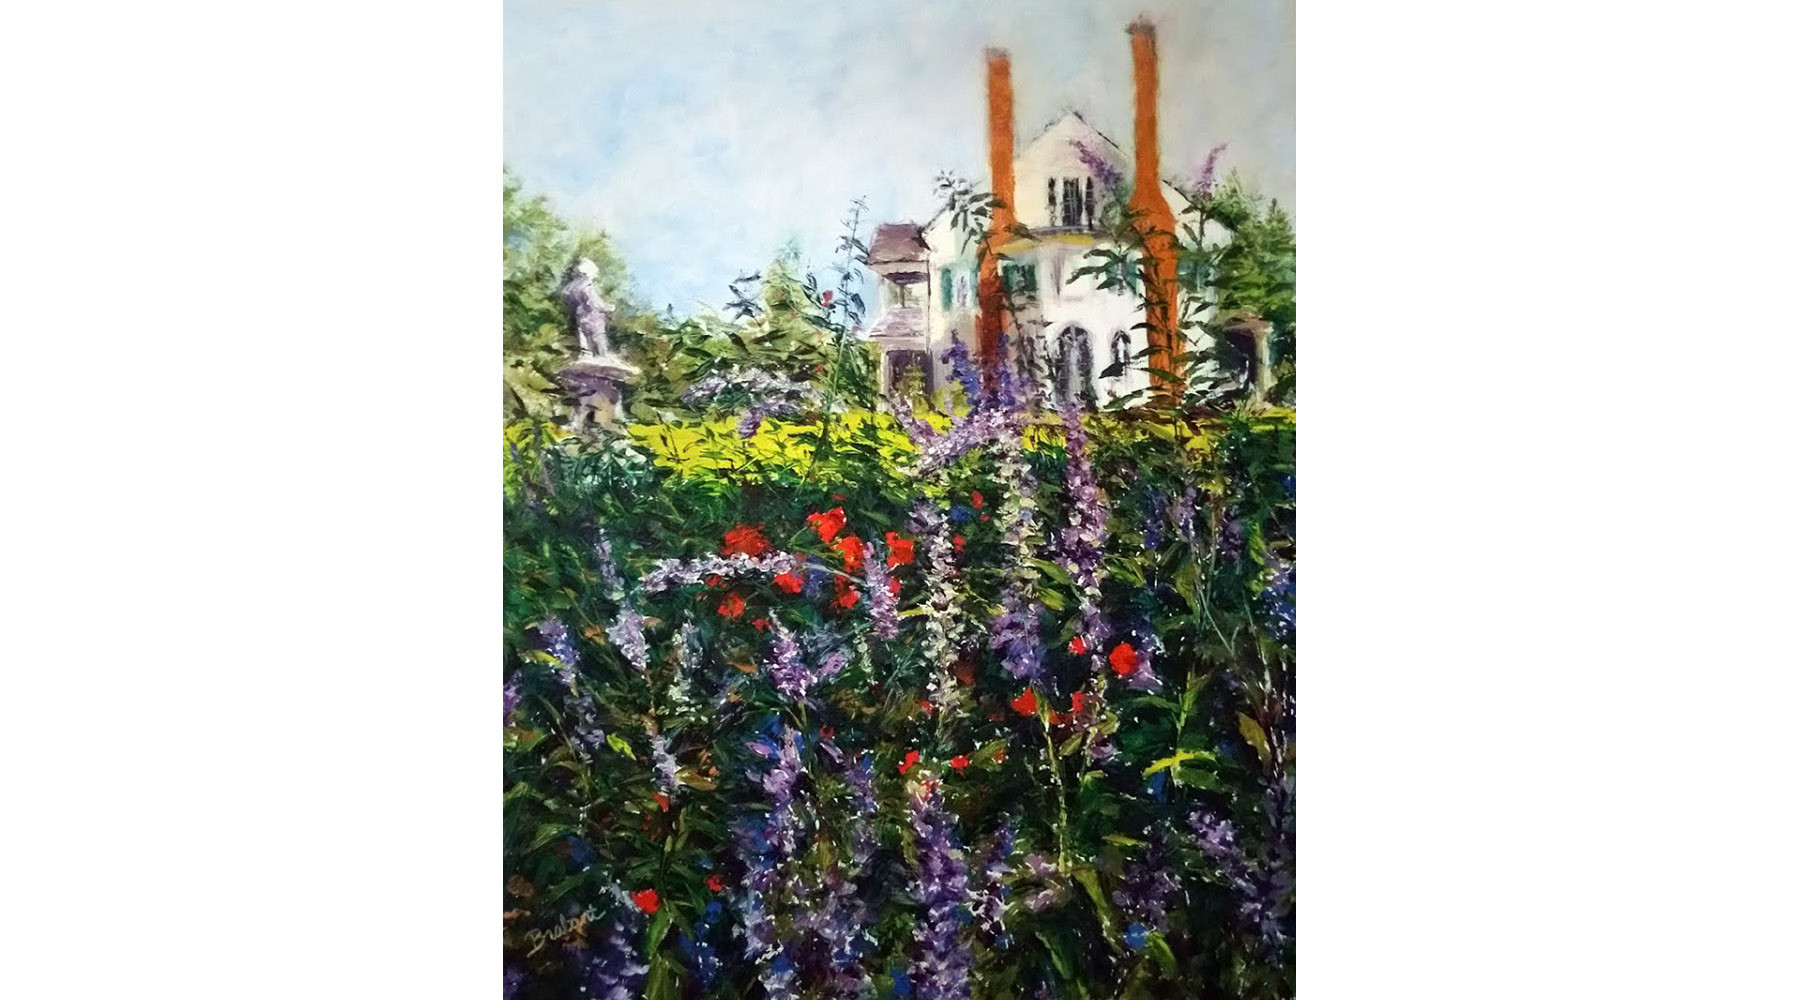 Belmont, Through the Garden, oil, 20 x 16 by Jill Brabant